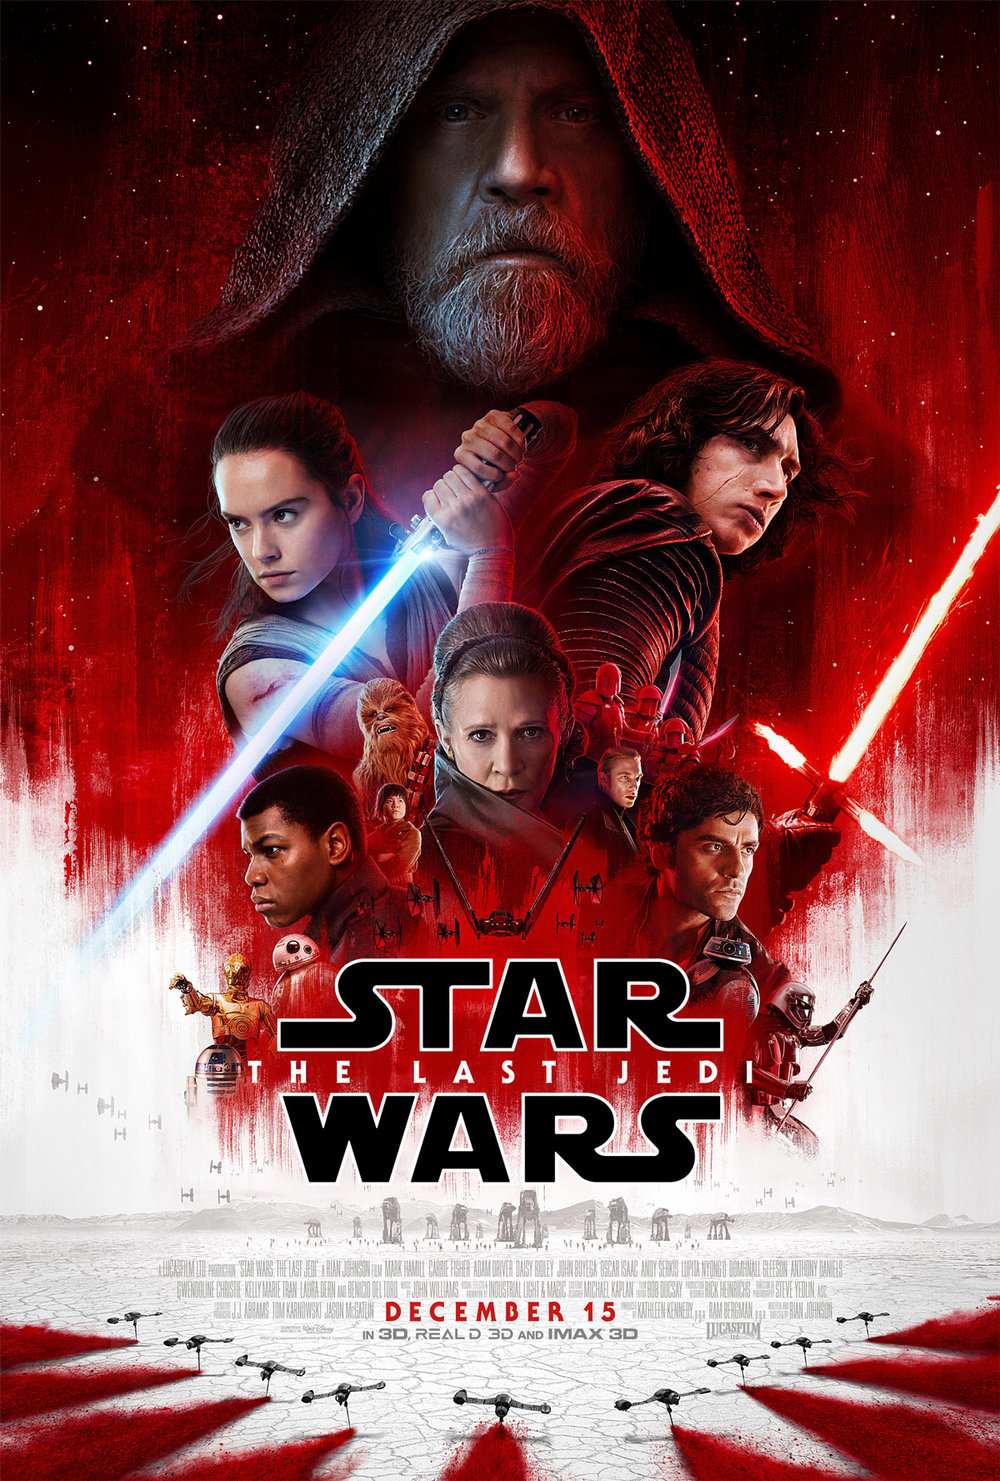 This is a poster for Star Wars: The Last Jedi. The poster art copyright is believed to belong to the distributor of the film, Walt Disney Studios Motion Pictures, the publisher, Lucasfilm, or the graphic artist.